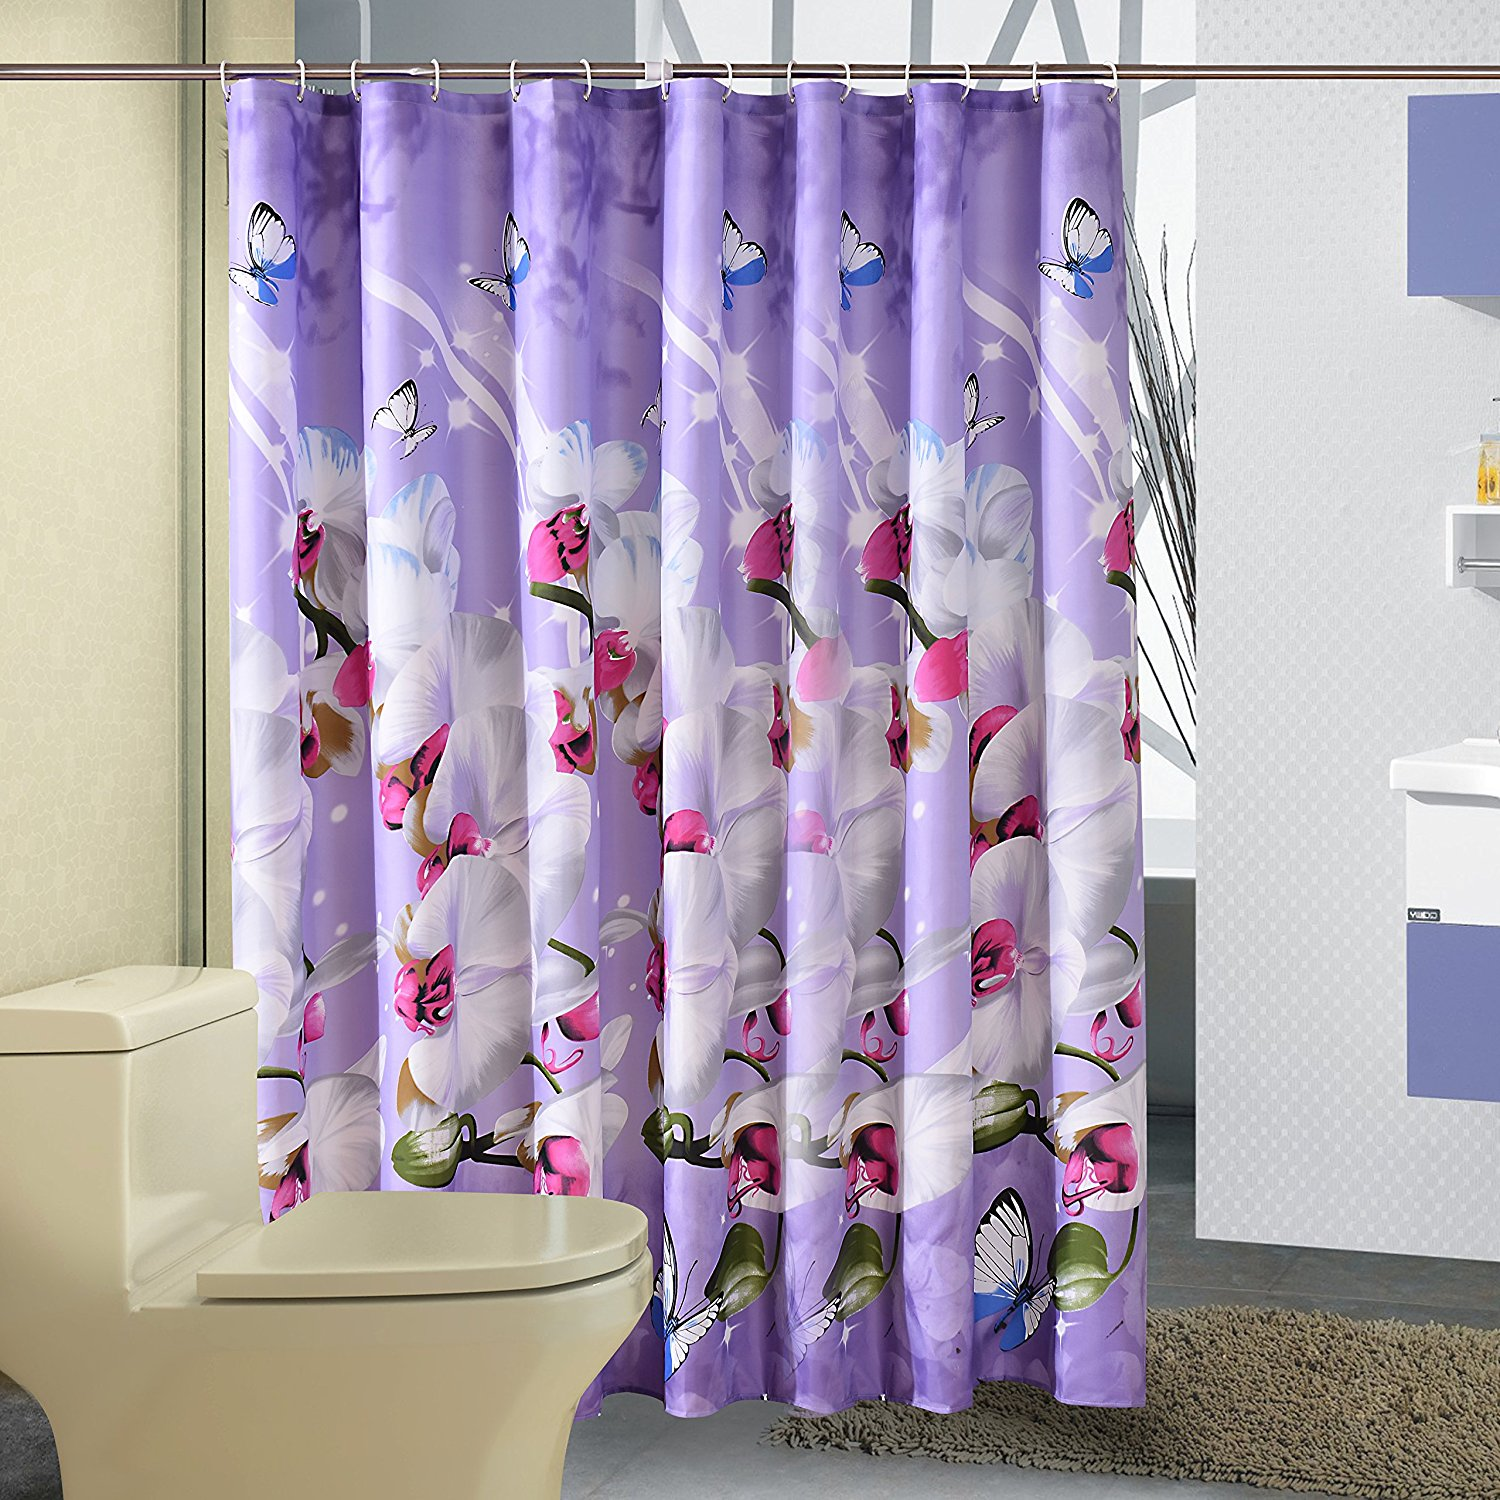 180x180 Polyester Fabric Shower Curtain Waterproof Home Bathroom Curtains Butterfly Orchid Purple Bath Crutain For The